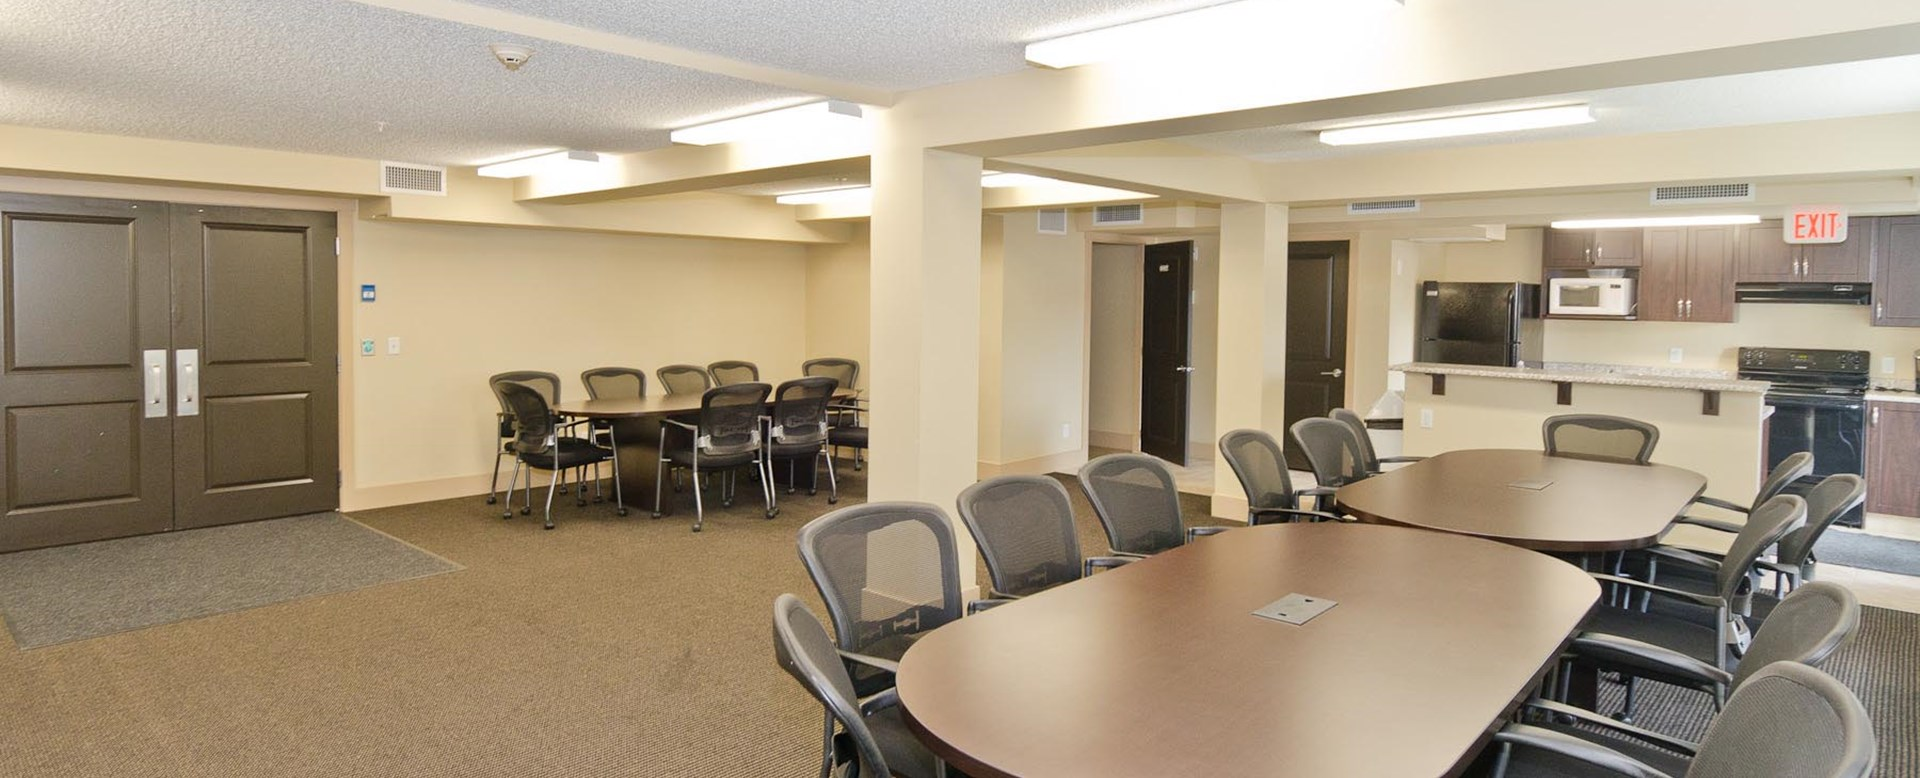 Community rooms at Spruce Ridge Gardens in Calgary